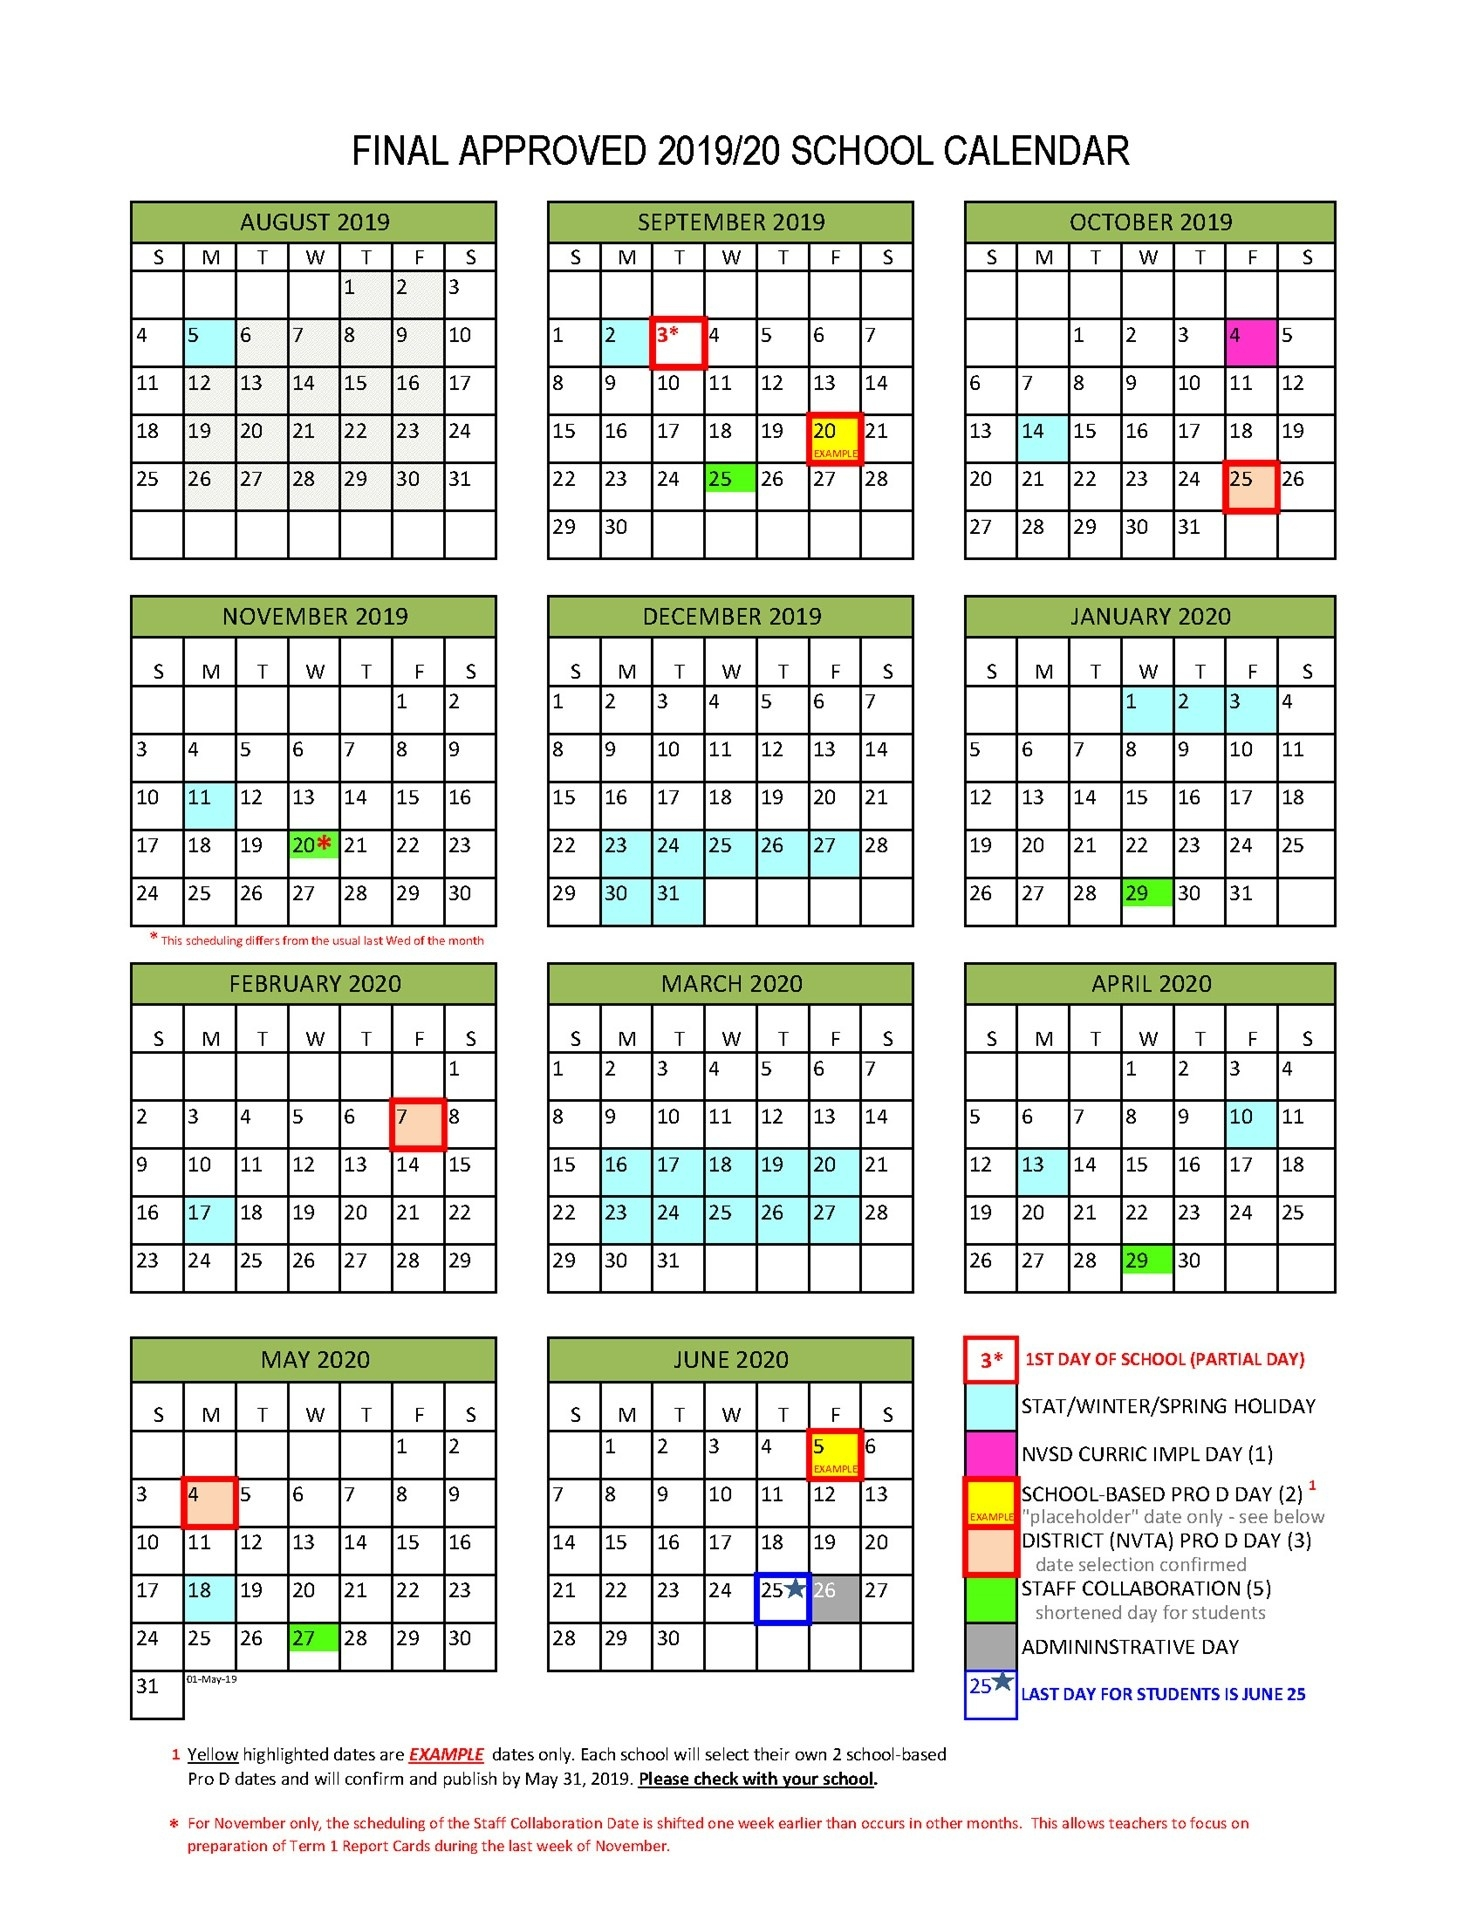 District Calendar - North Vancouver School District_Sd 5 School Calendar